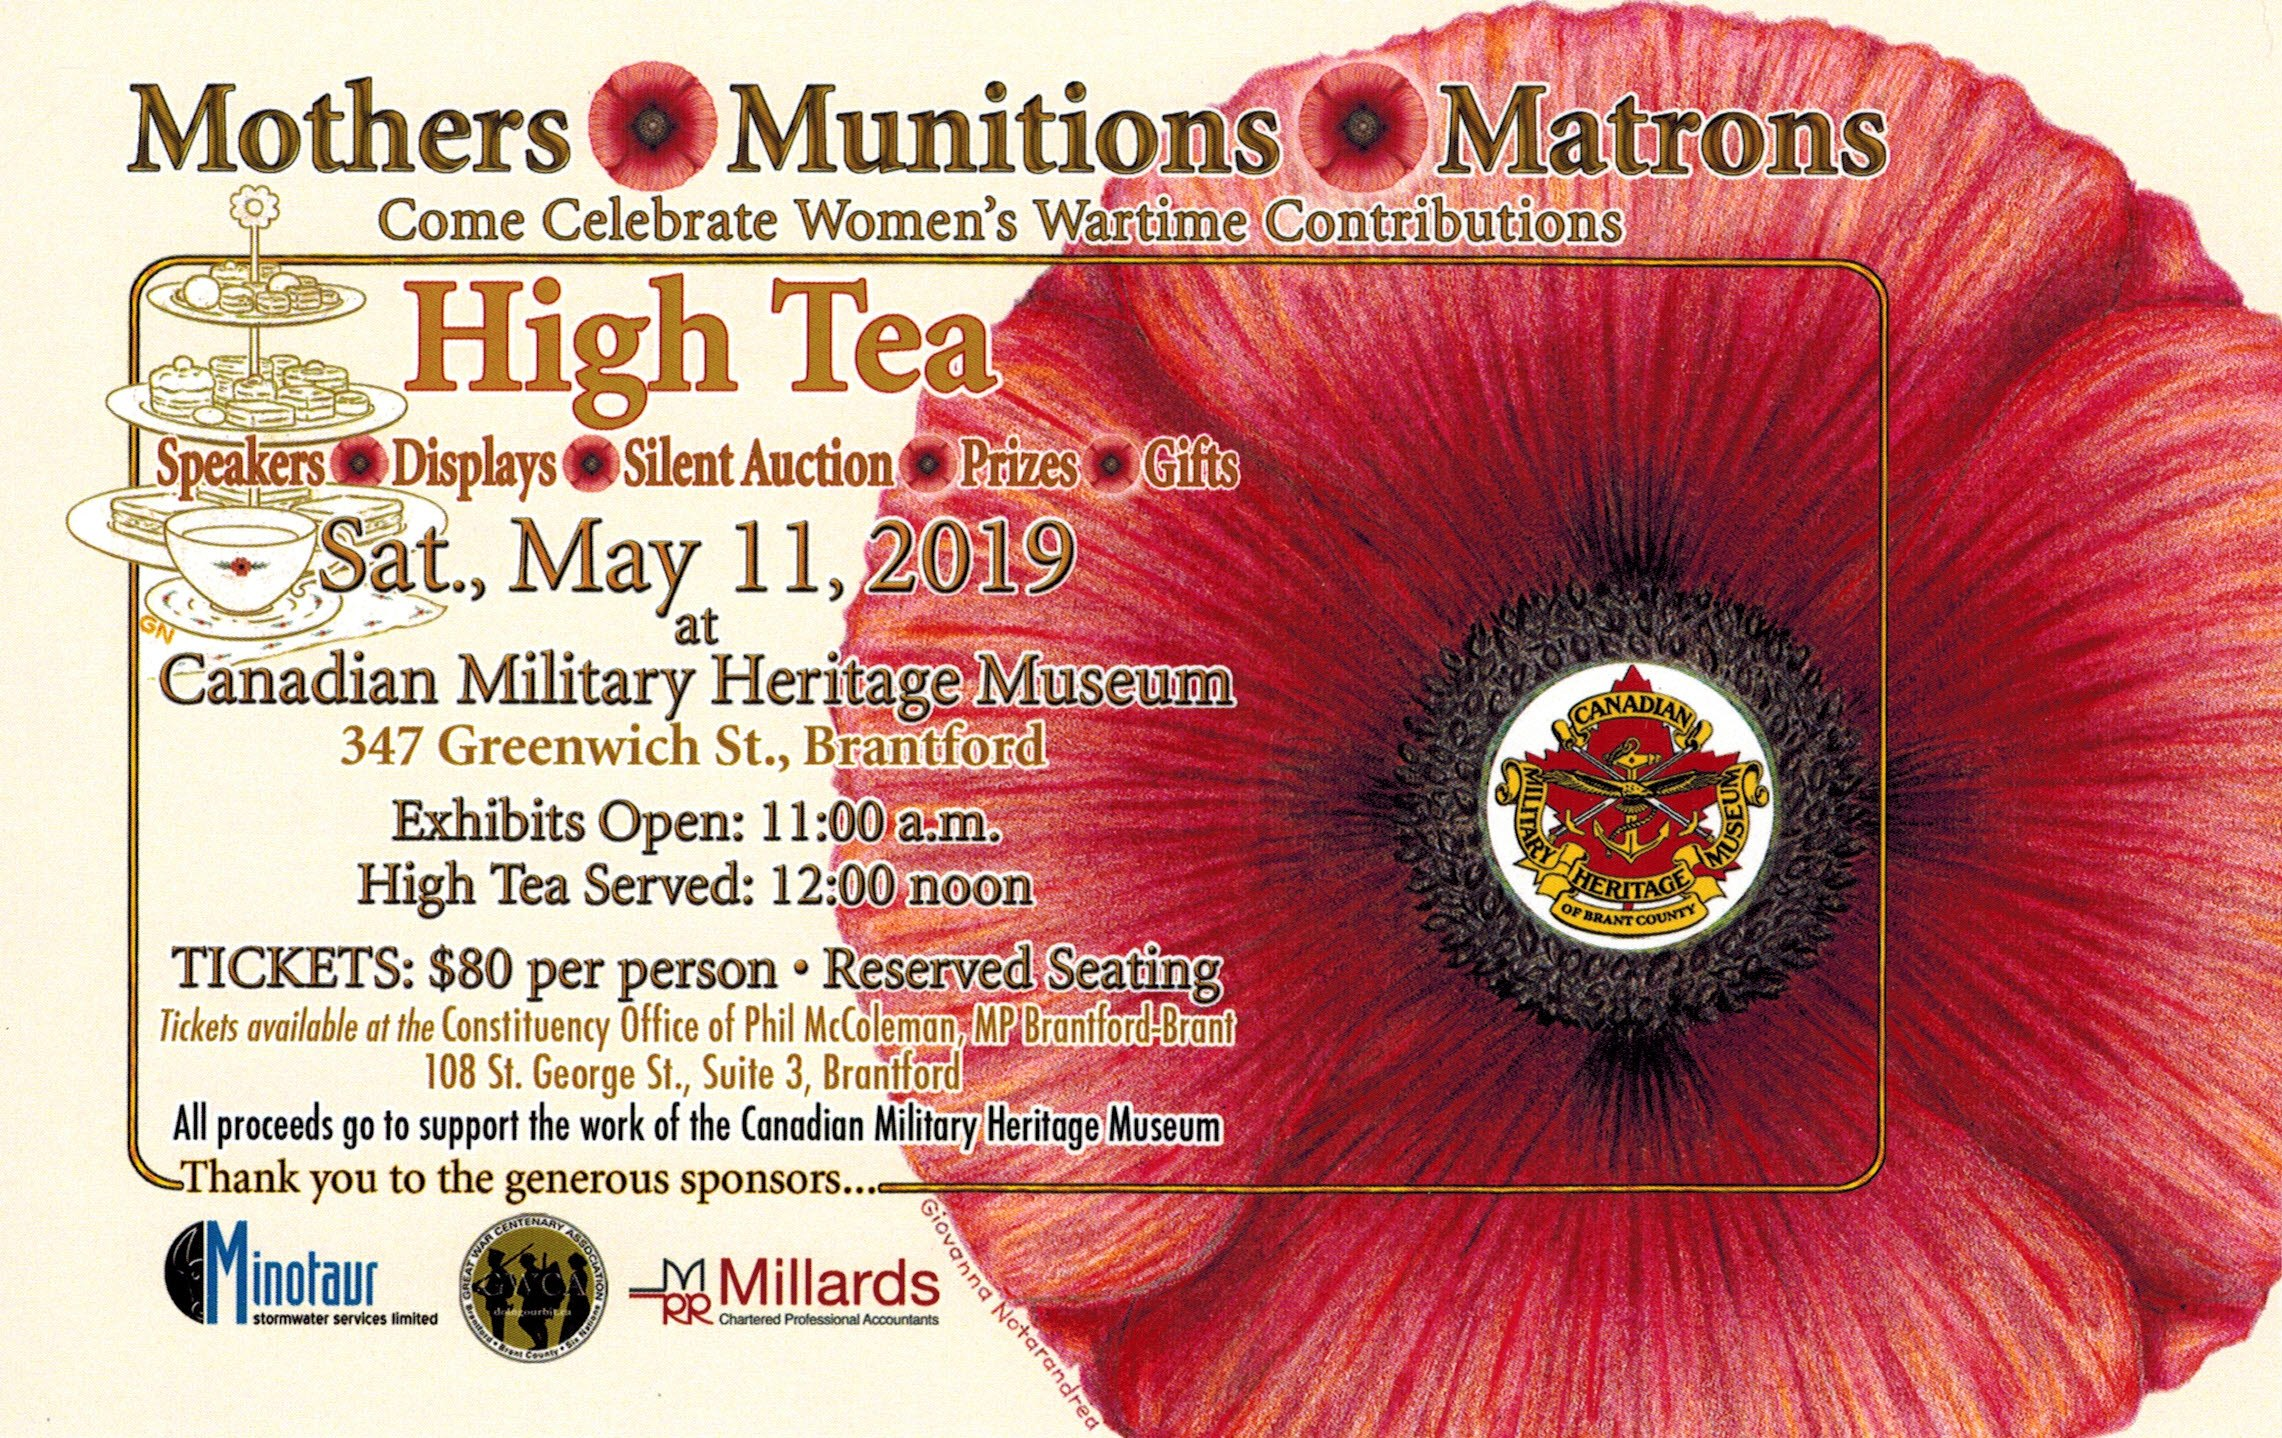 High Tea in Celebration of Women's Wartime Contributions – May 11, 2019